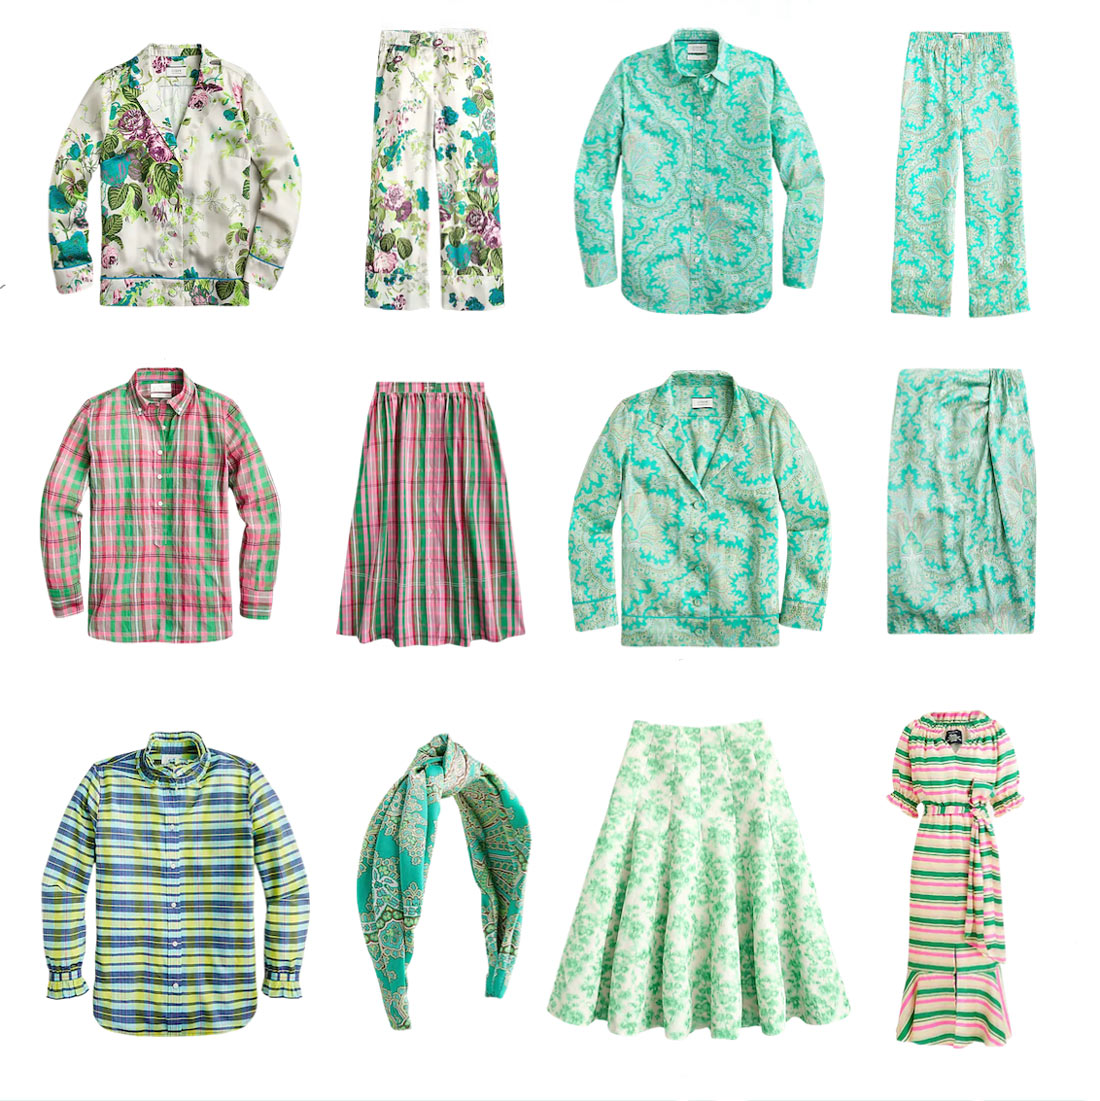 J Crew Spring 2021 Outfits